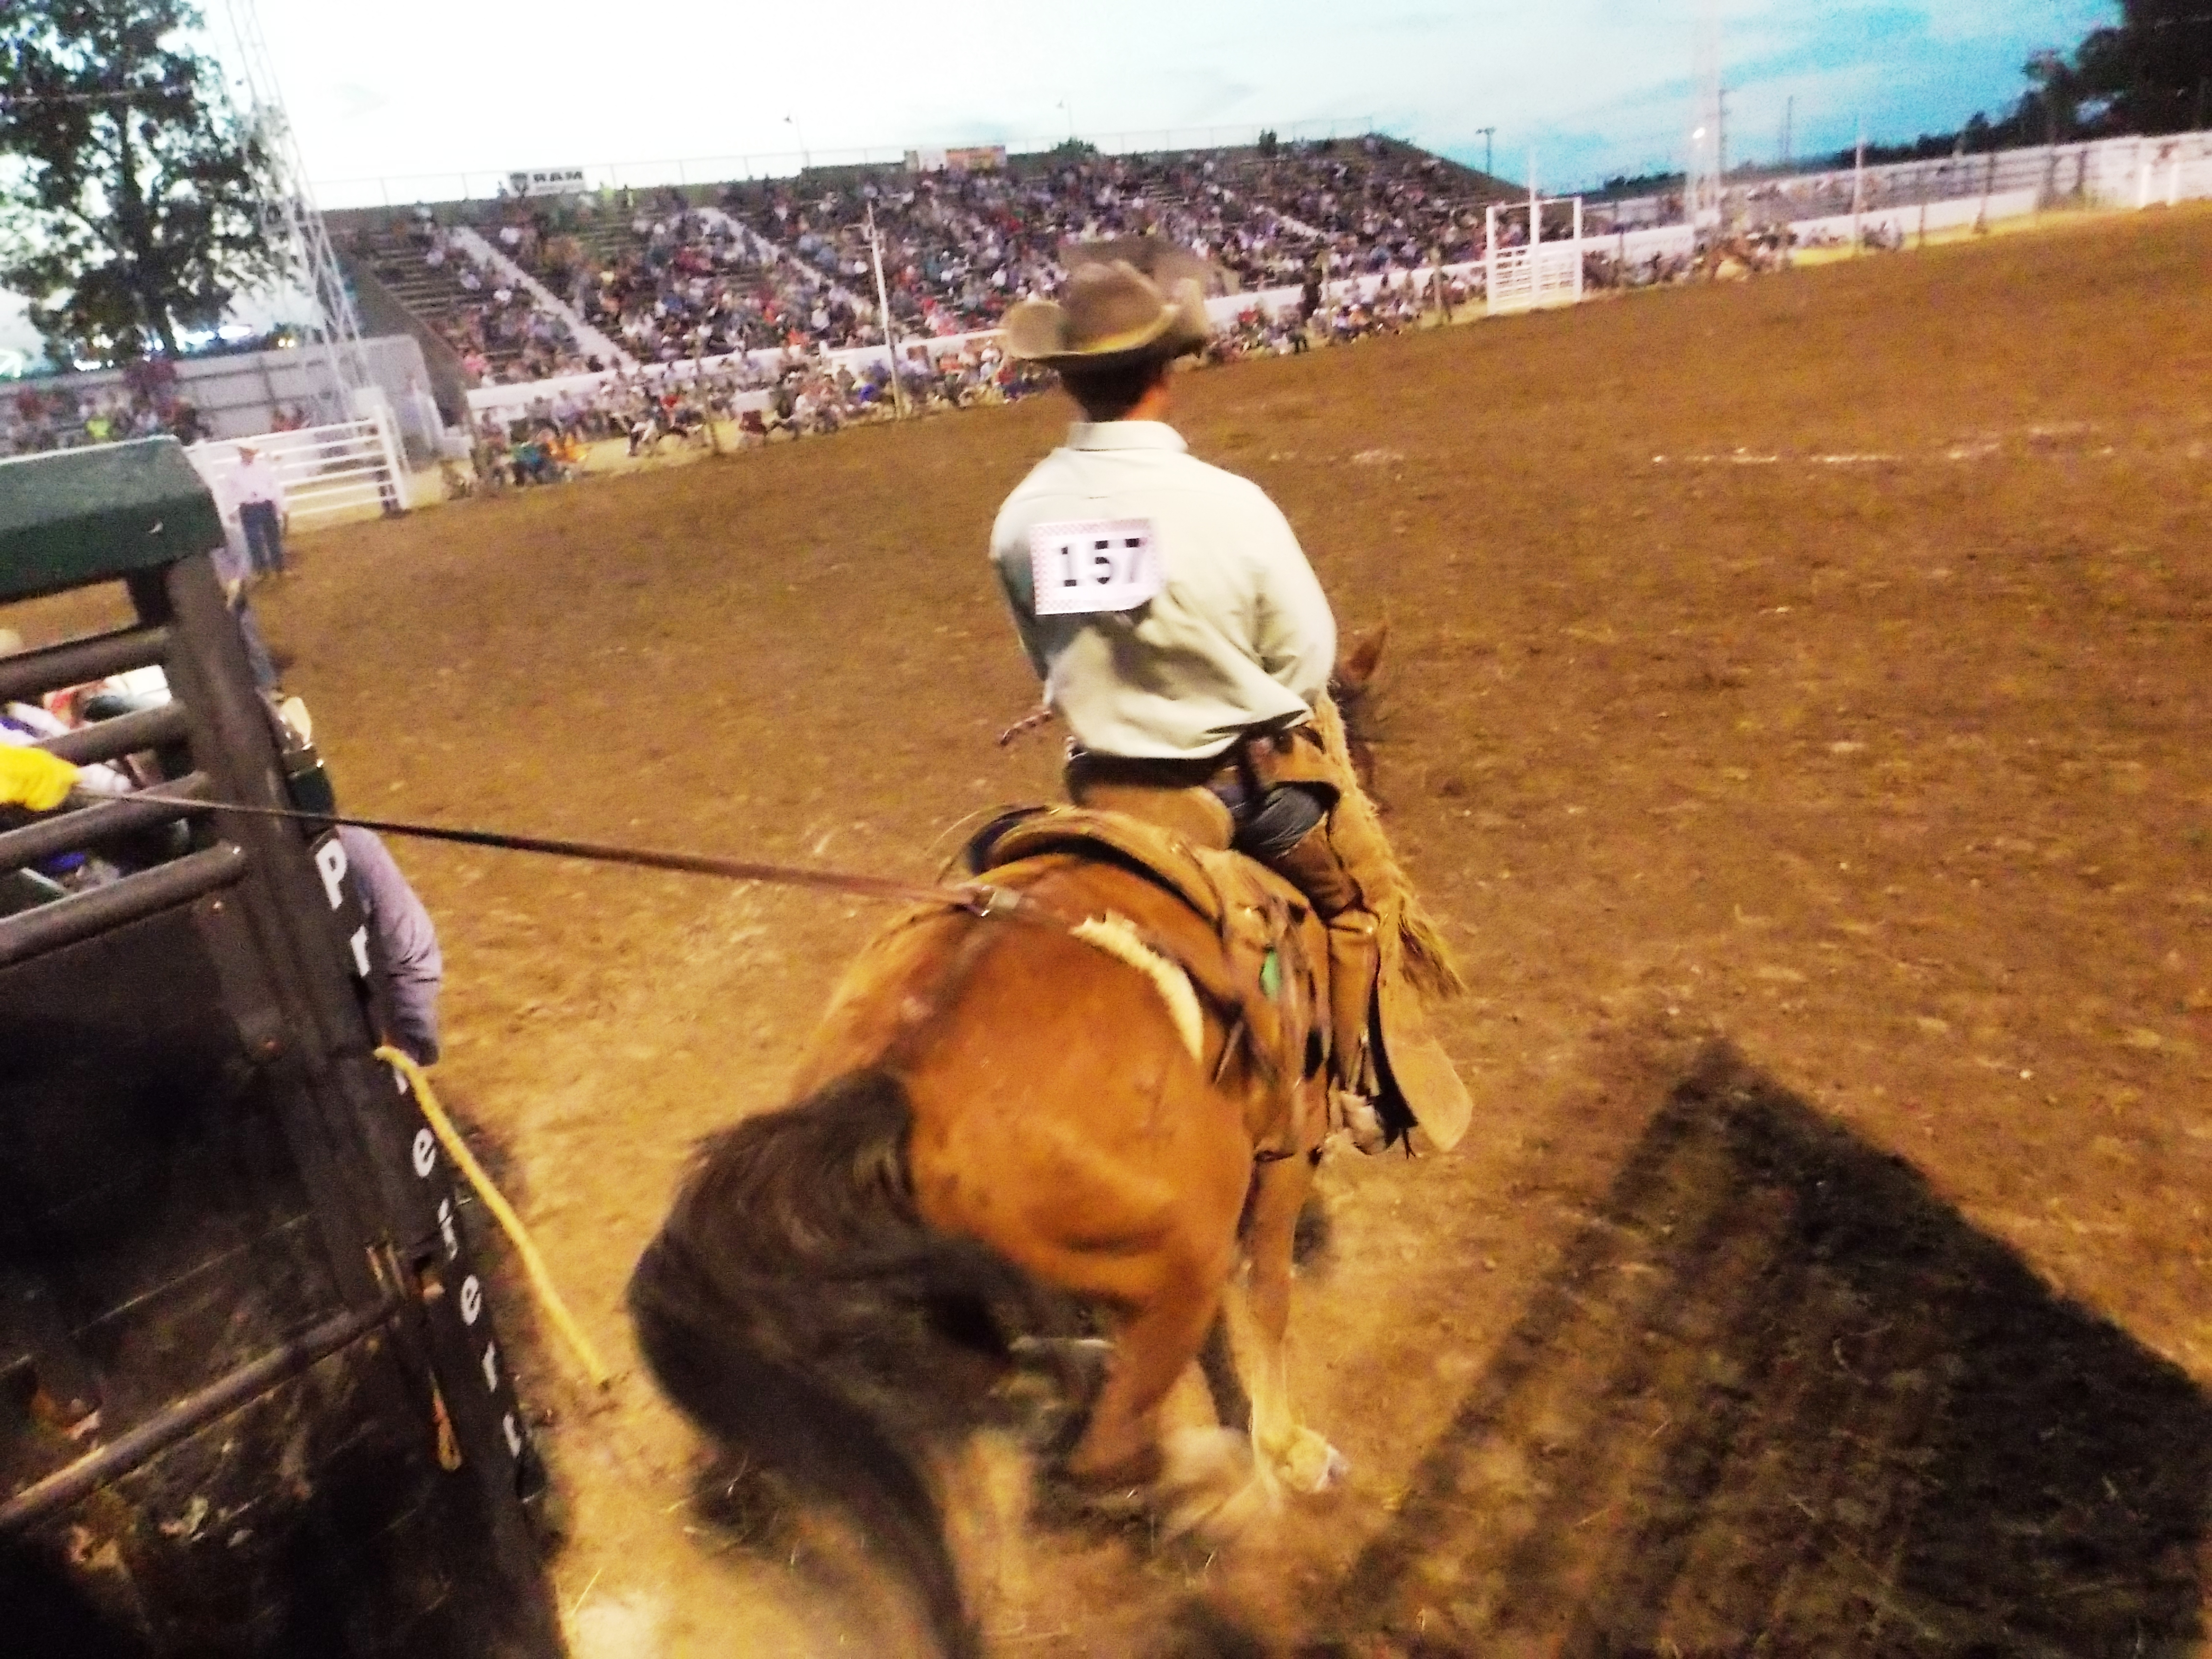 Coffeyville Interstate Fair And Rodeo Ranch Rodeo Results